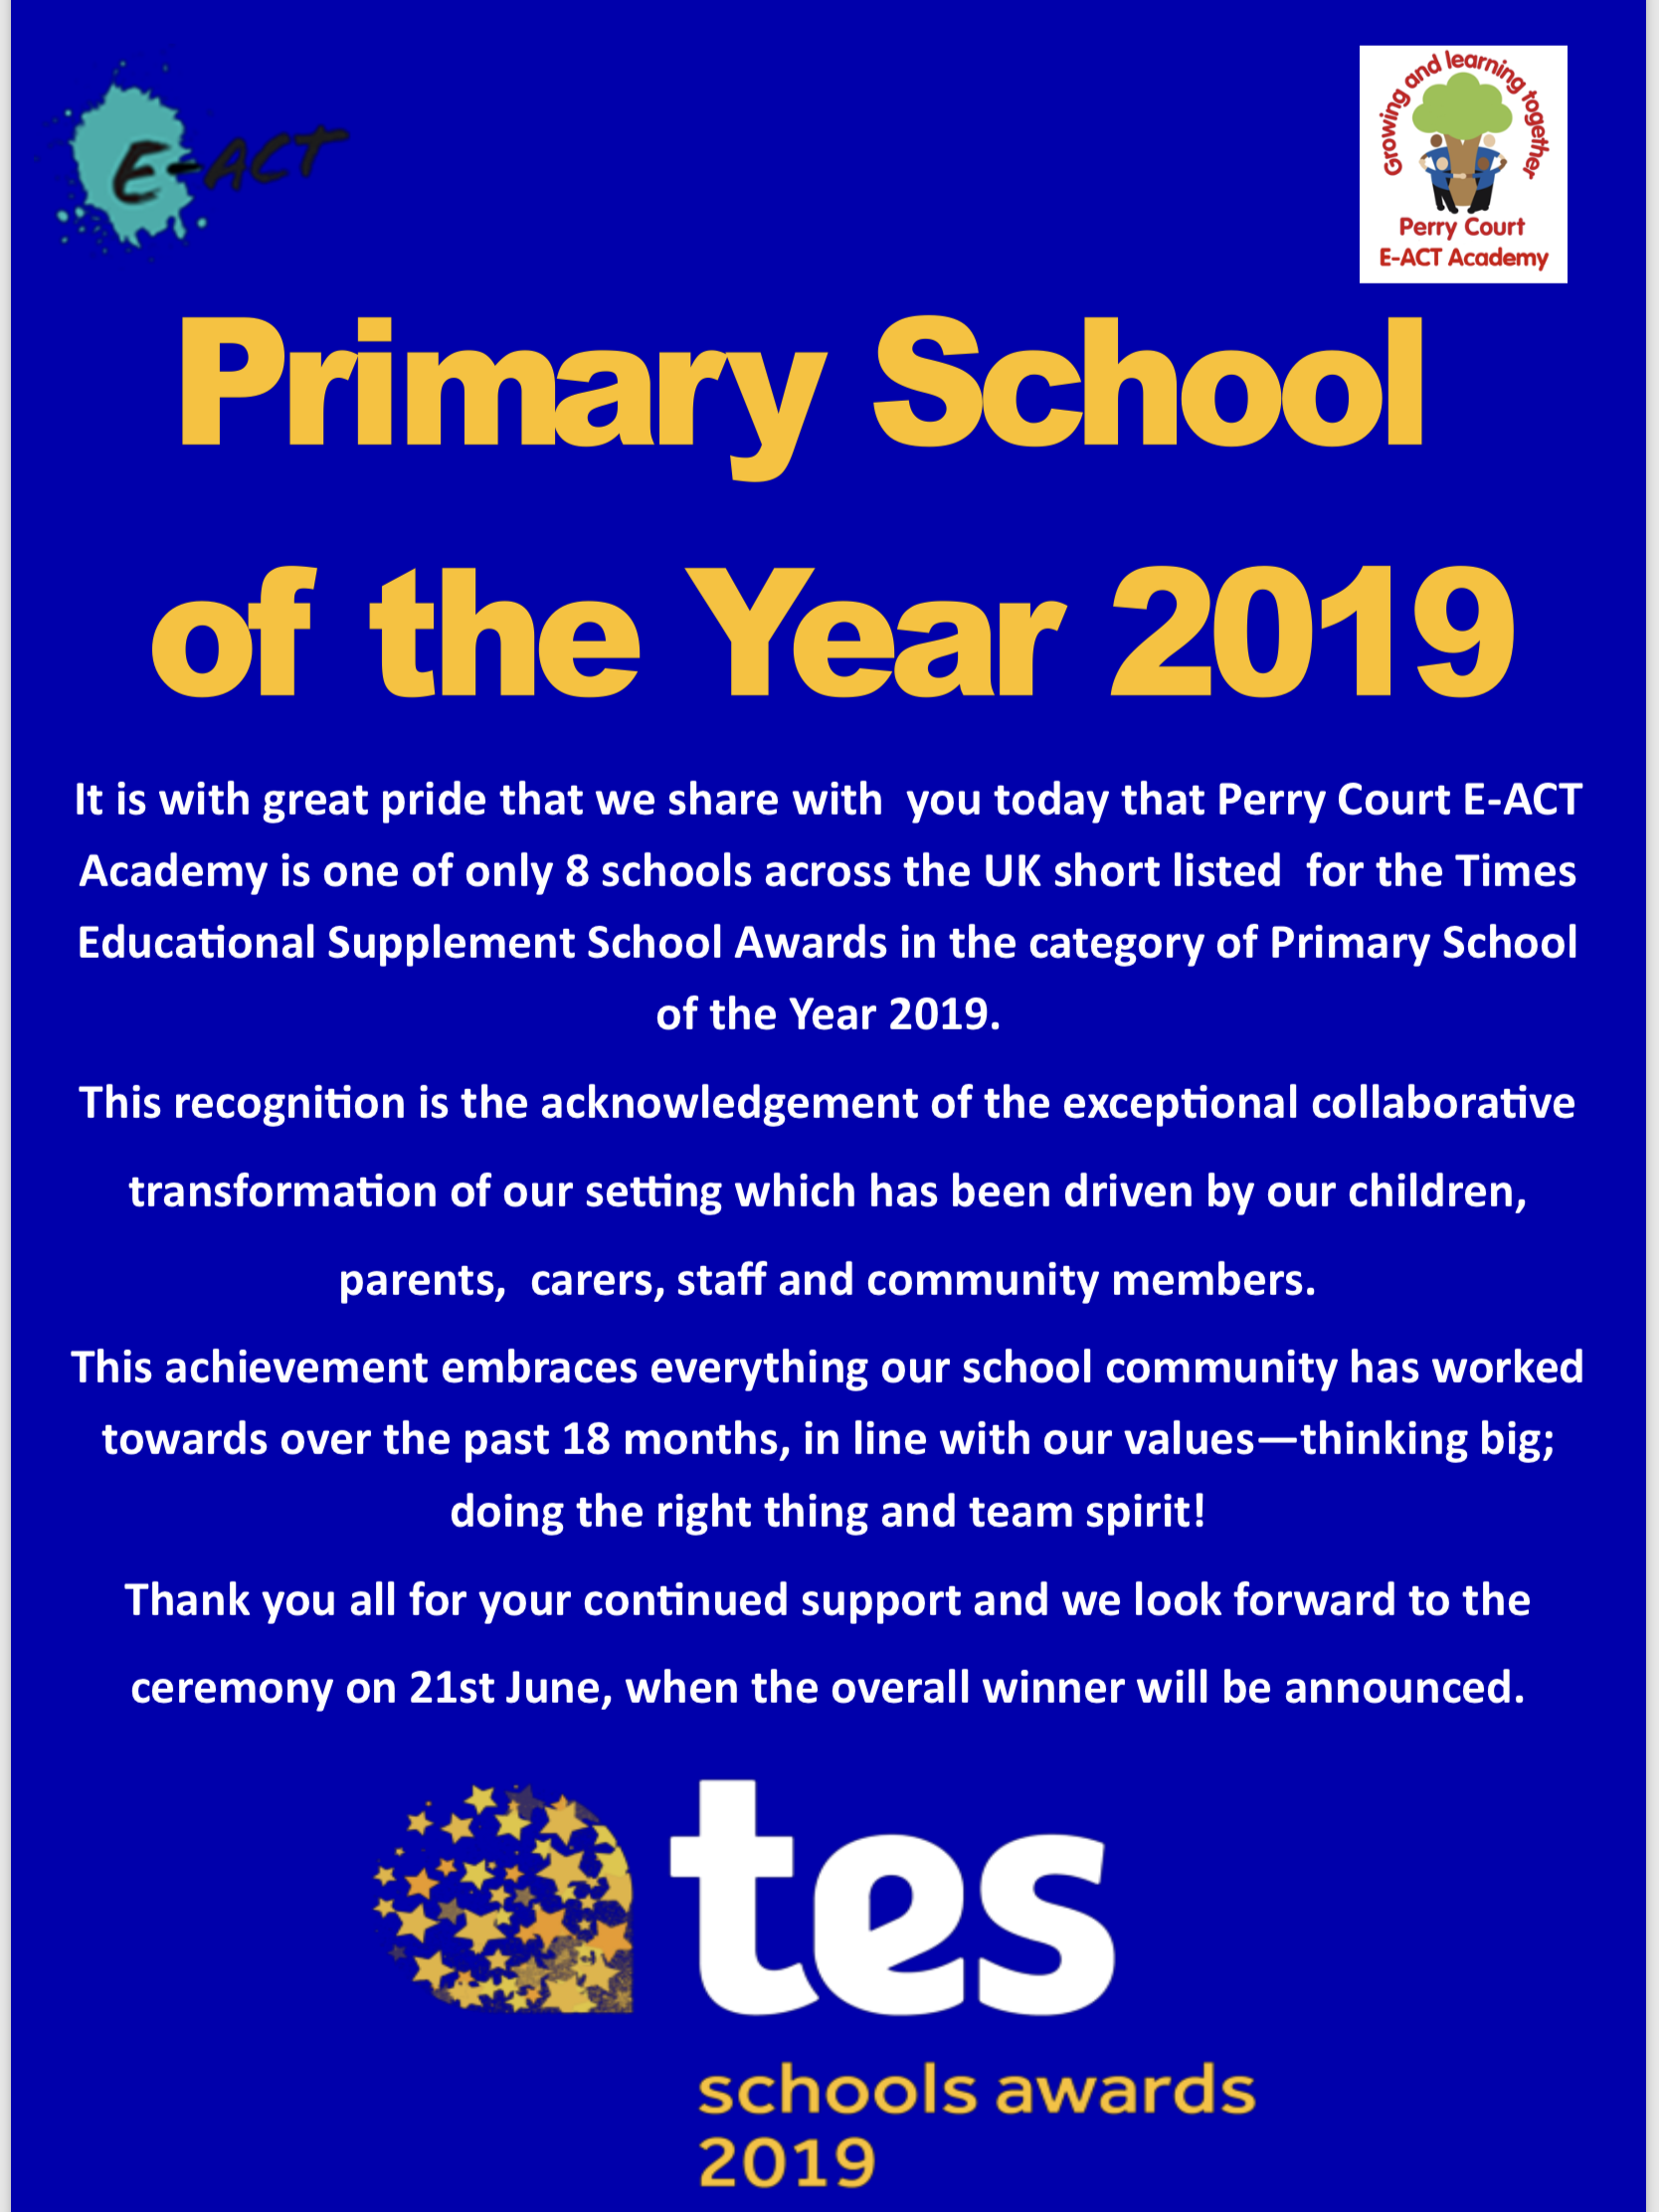 Primary School of the Year 2019 - Perry Court E-Act Academy